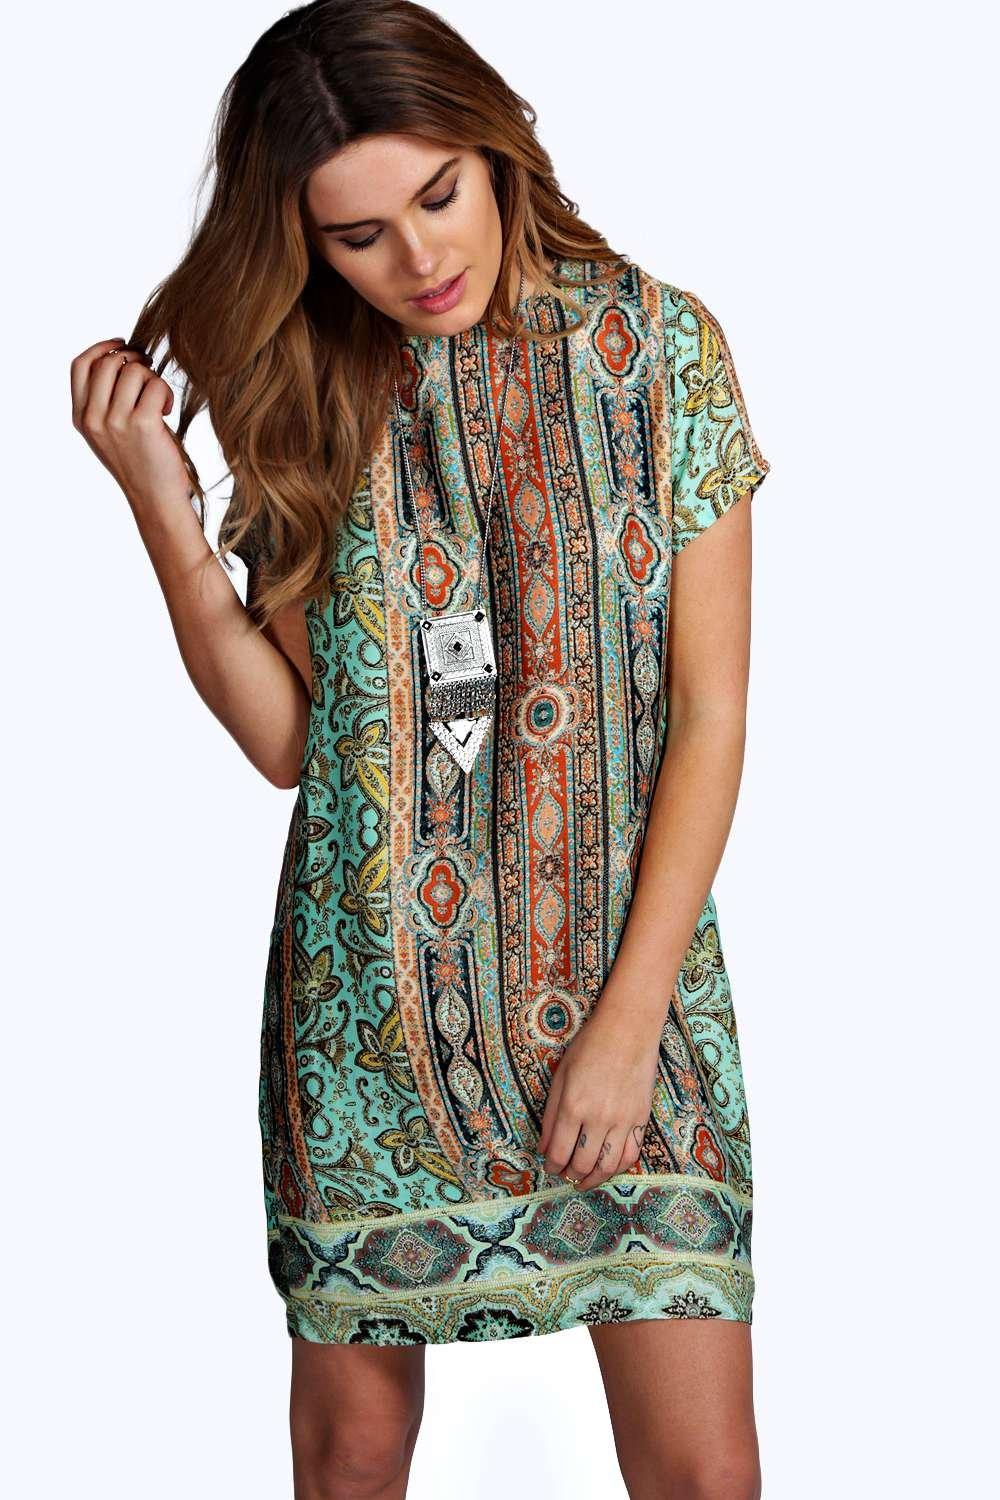 Iris Panelled Paisley Print Cap Sleeve Shift Dress